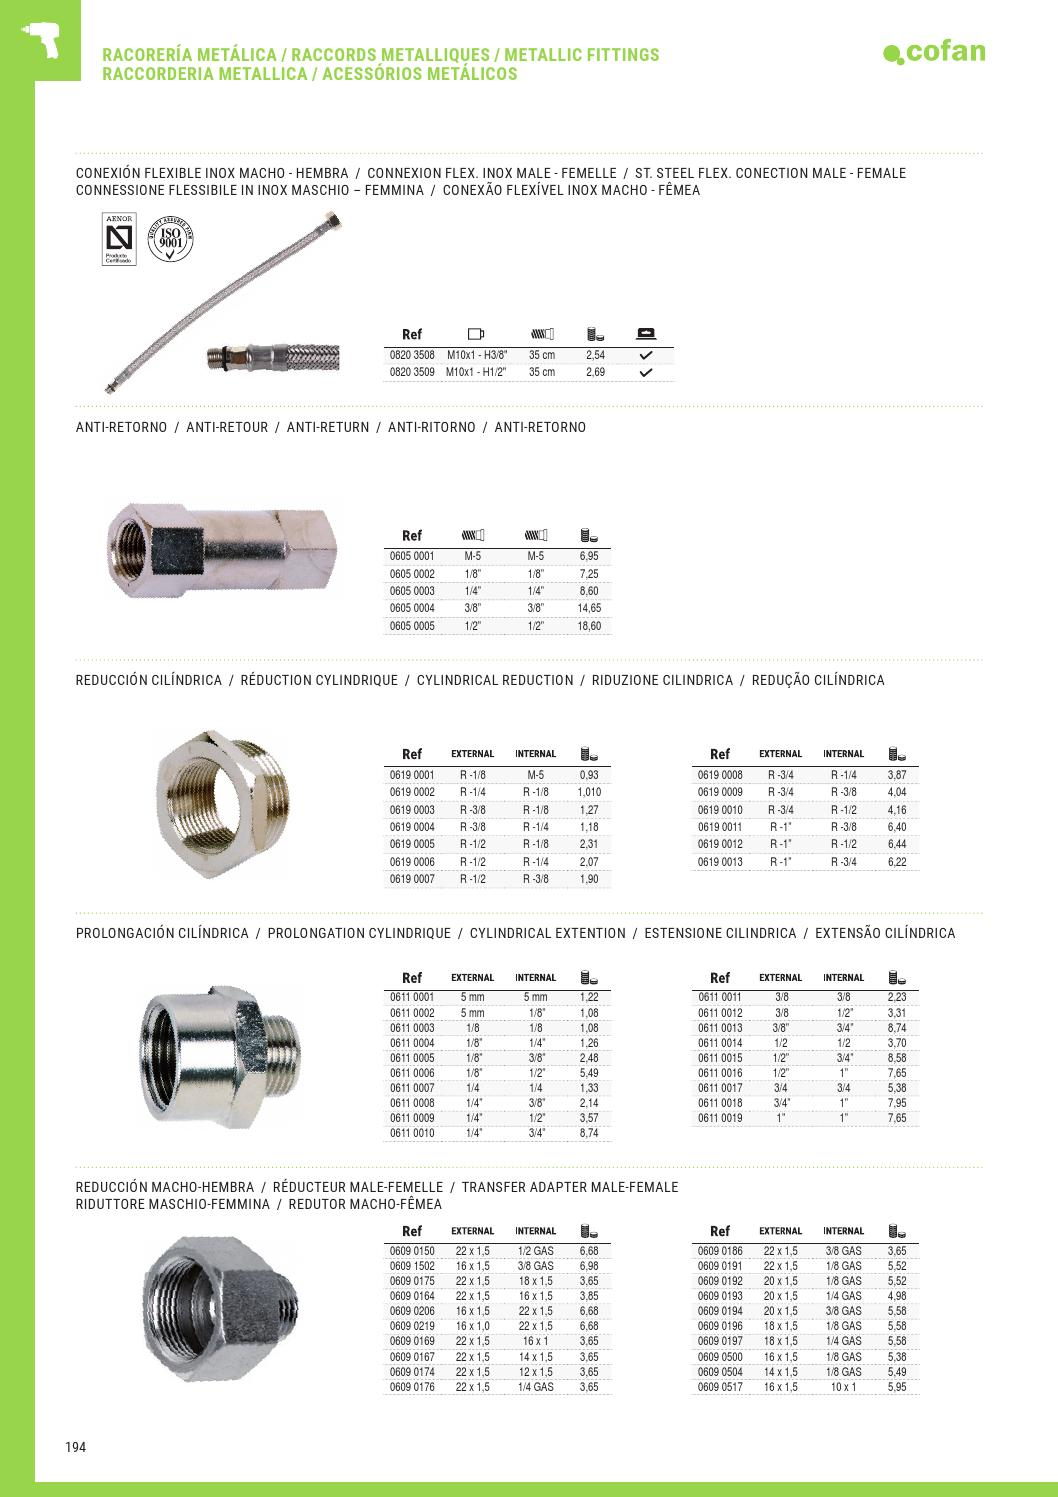 / Reduction Cylindrical CoFan 06190012/